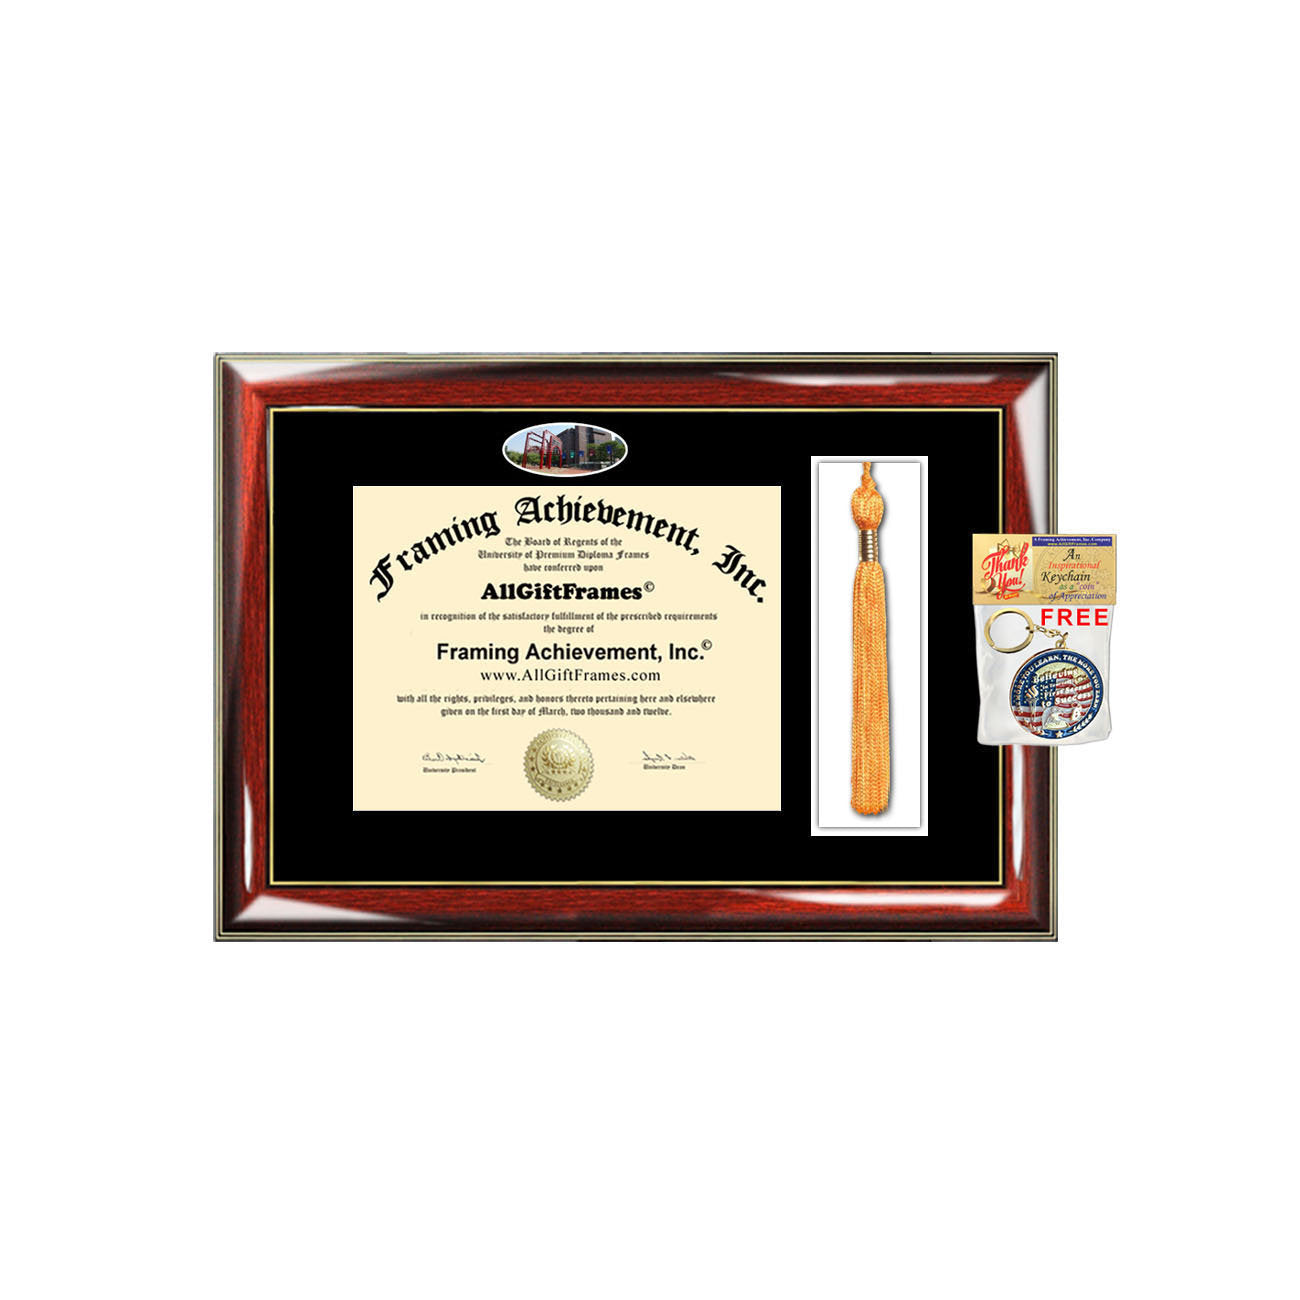 LIU Brooklyn diploma frames Long Island University diploma tassel box